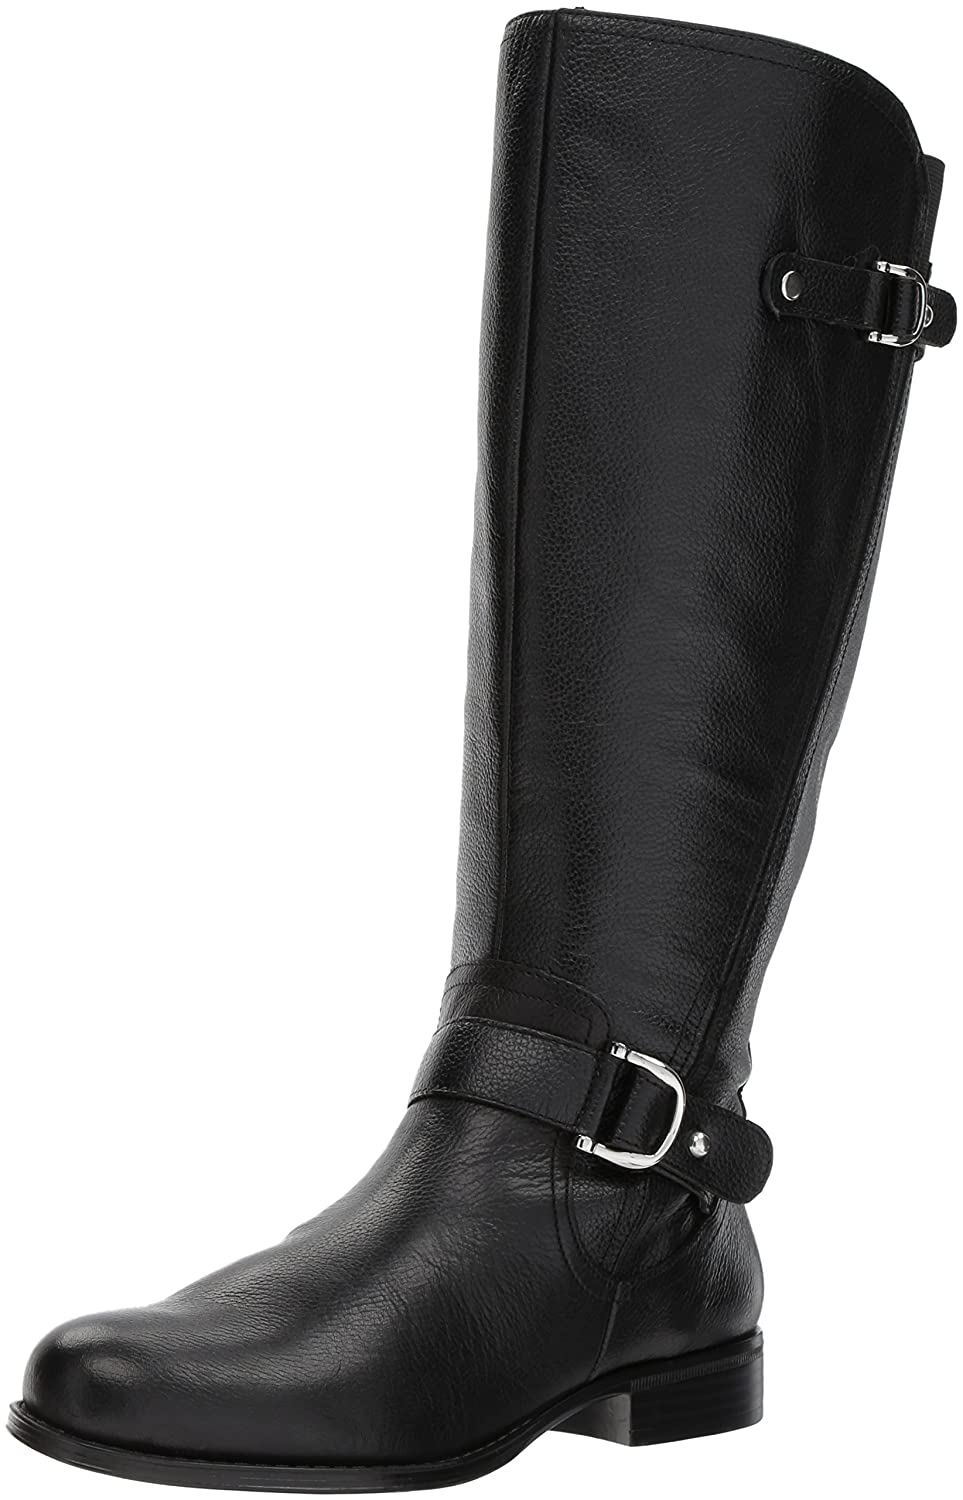 Naturalizer Women's Jenelle Wc Riding Boot B06XC741CM 7.5 2W US|Black